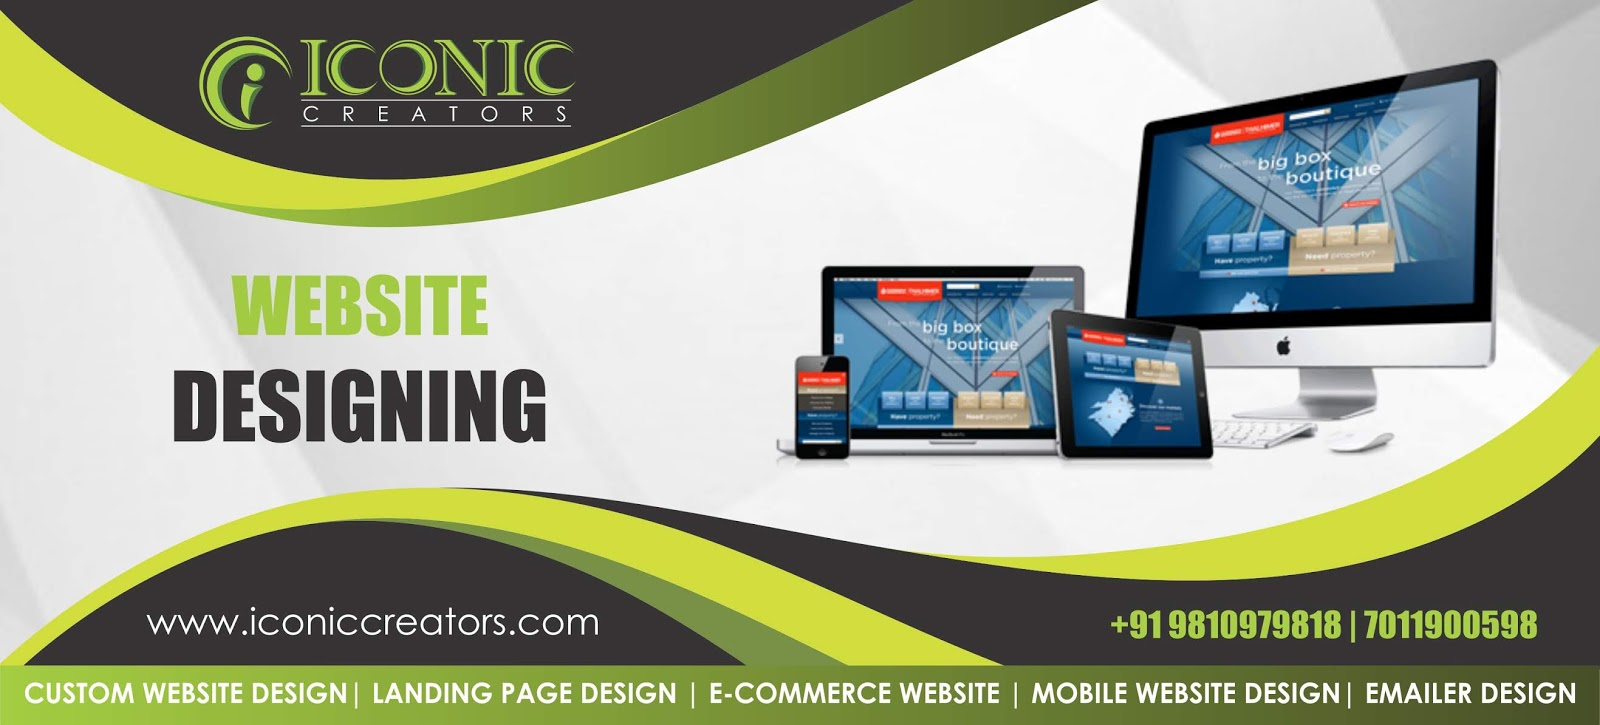 Ecommerce Website Designing Software Development Digital Agency In Delhi Ncr India June 2019